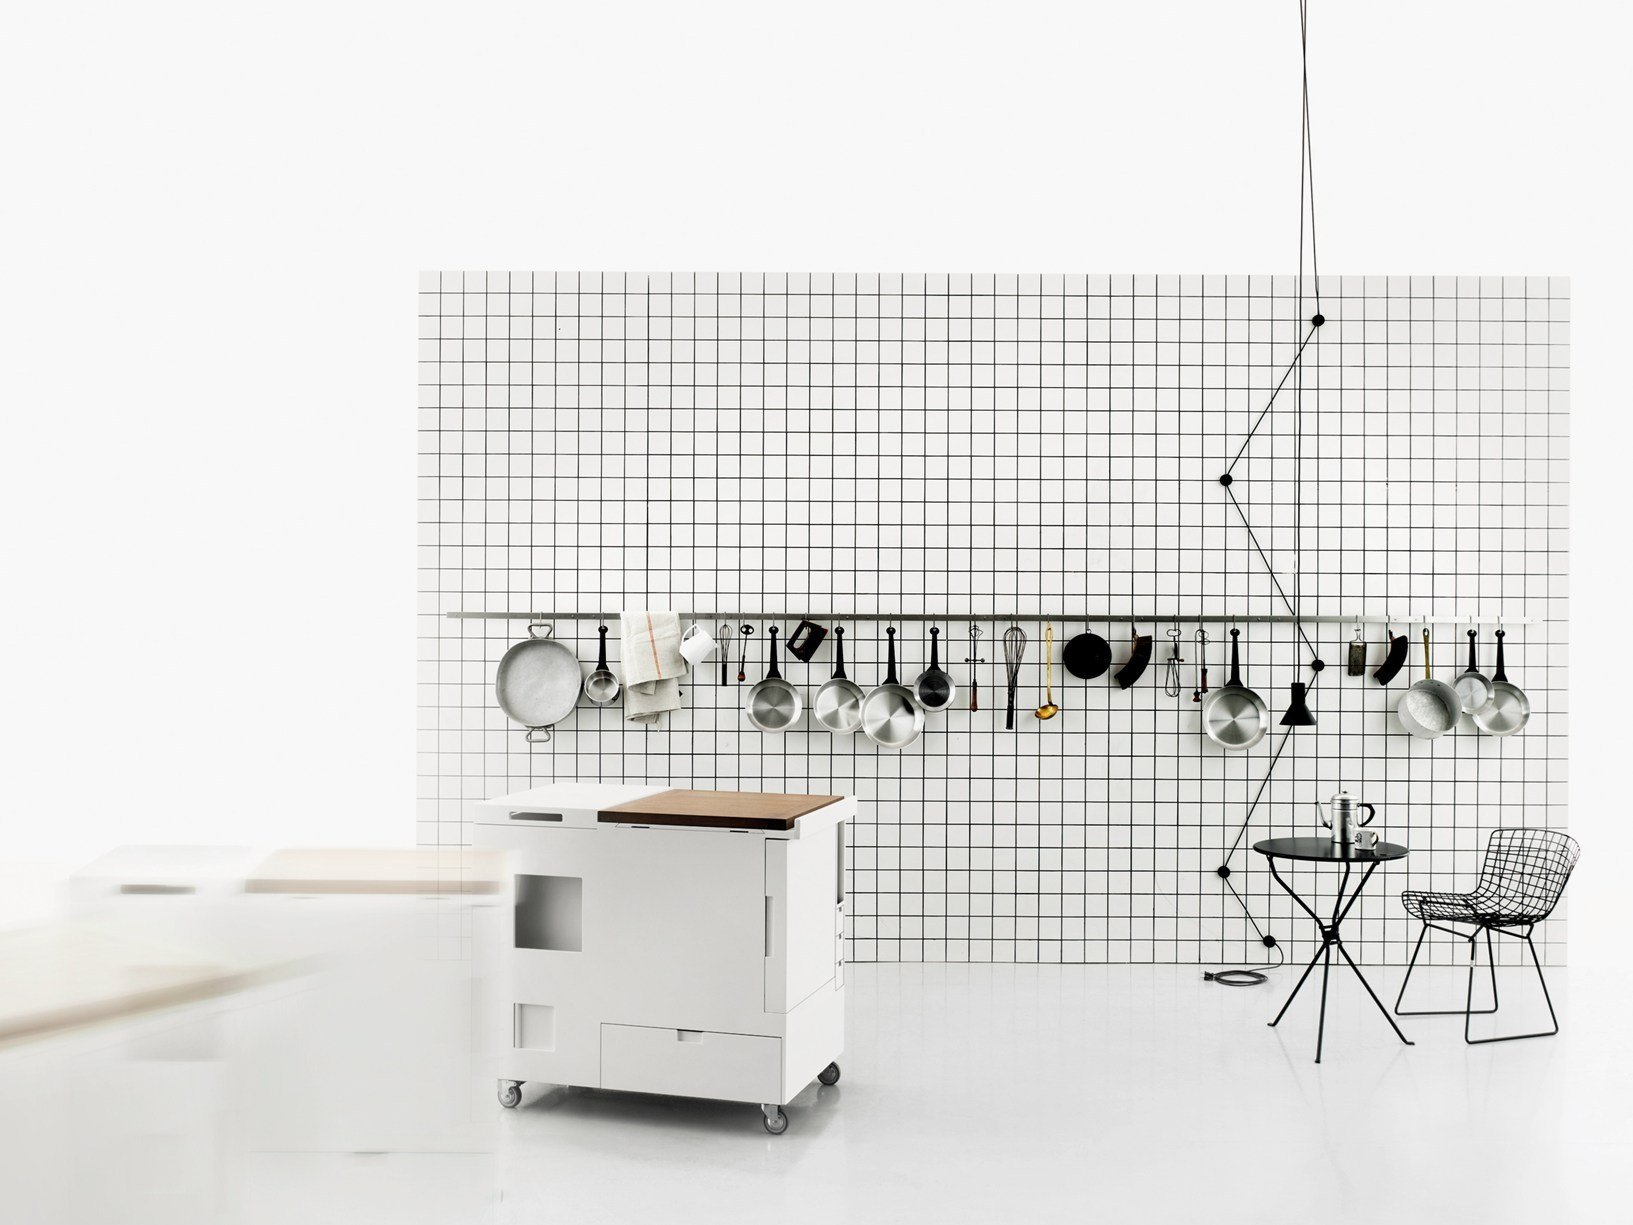 Minikitchen di joe colombo al 39 triennale design museum 39 for Le bon coin ameublement 58